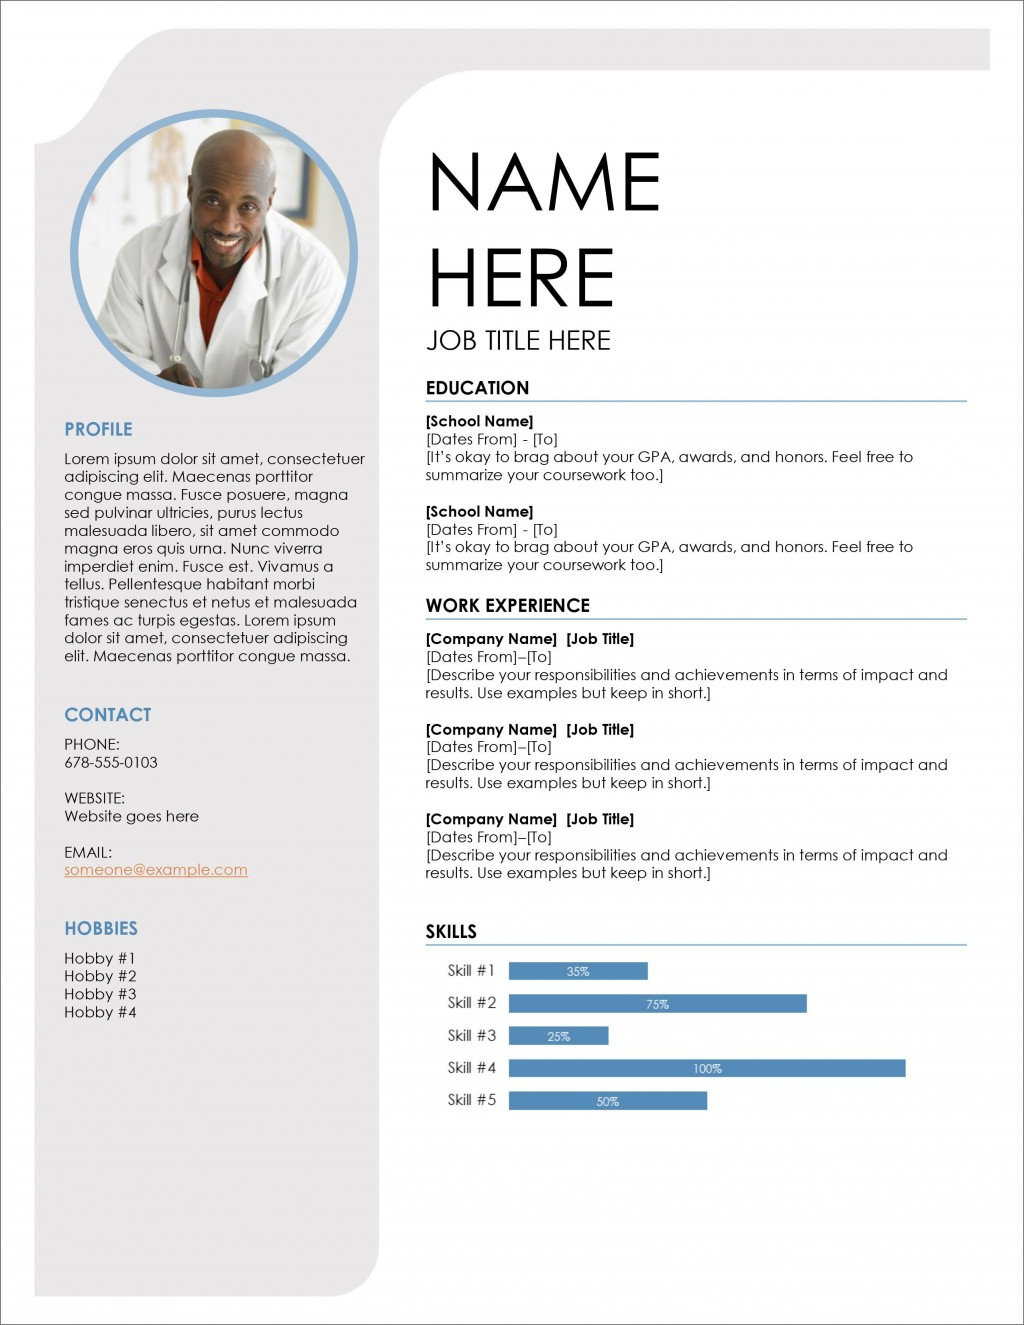 007 Marvelou Resume Template Download Word Image  Cv Free 2019 Example FileLarge